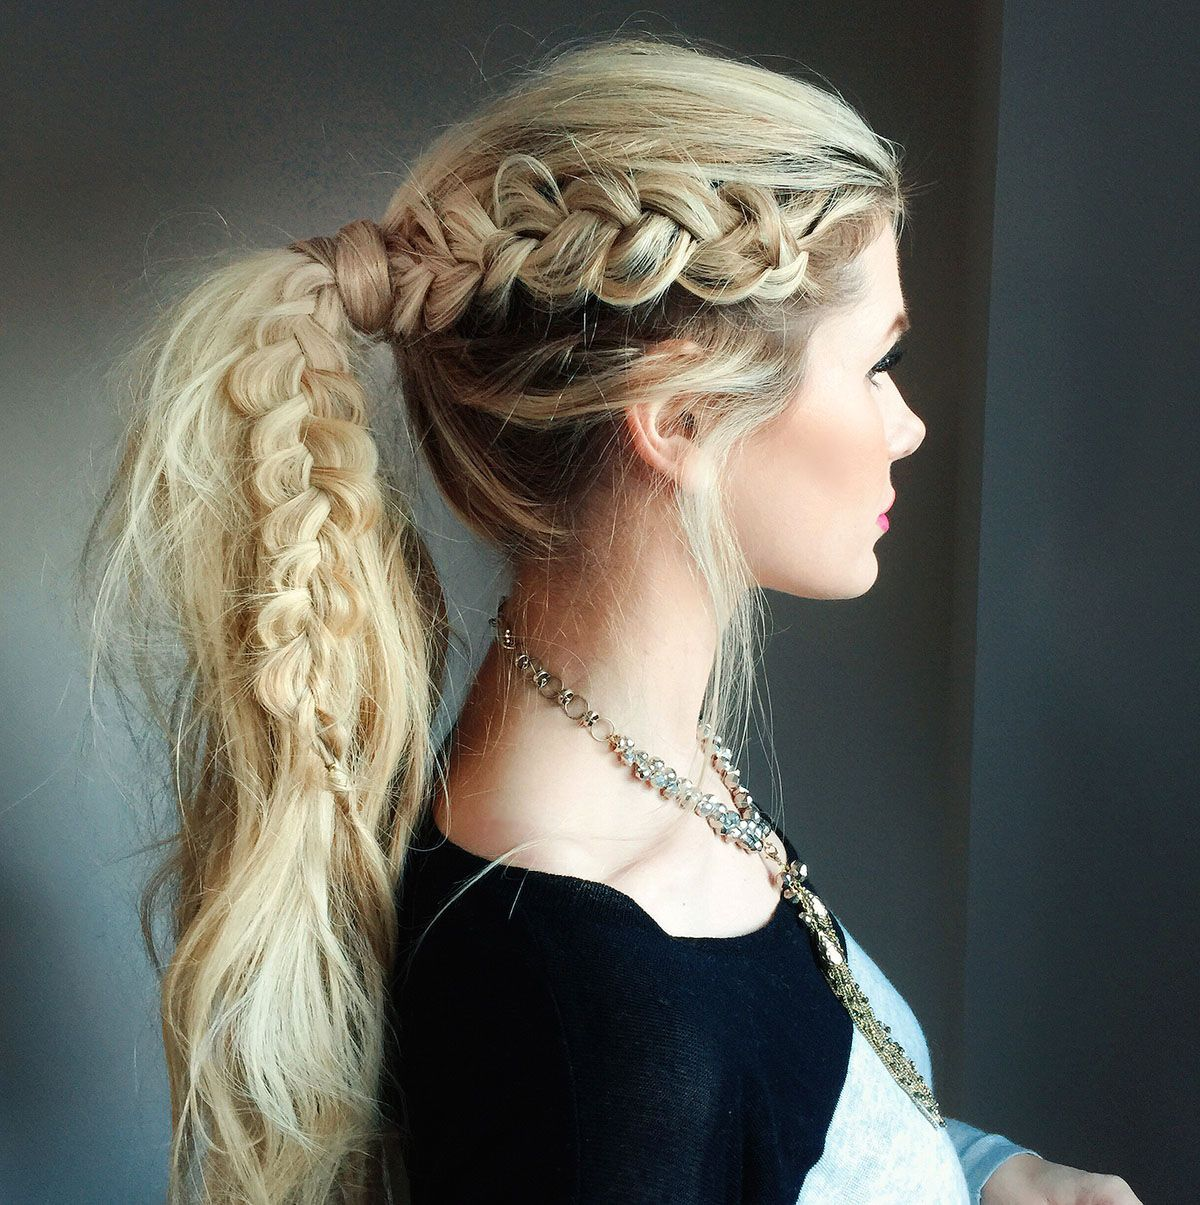 In The Hairstyle Department, Braids Are King Whether You're A Fan Of